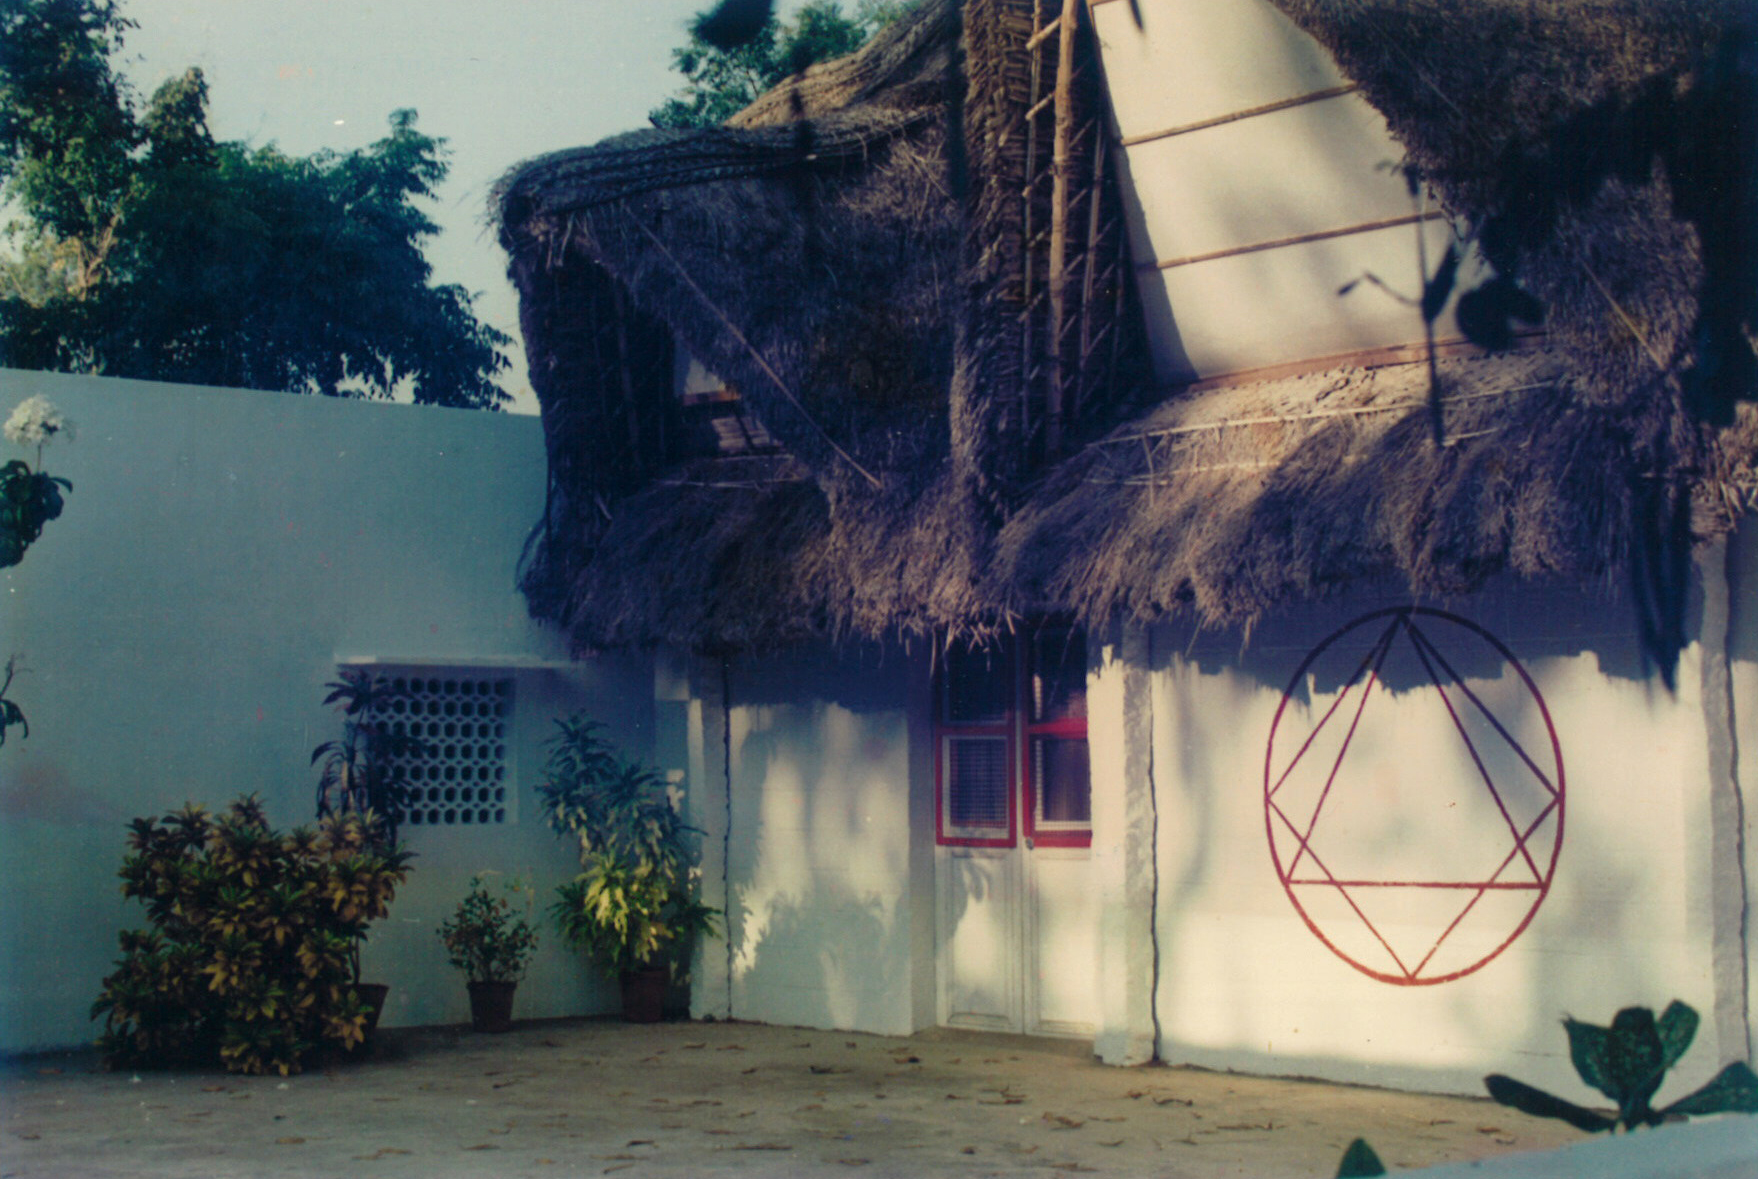 BACK SIDE OF IGOR'S HOUSE IN ASPIRATION-AUROVILLE WITH AN ALIEN WAITING OUTISDE .jpg